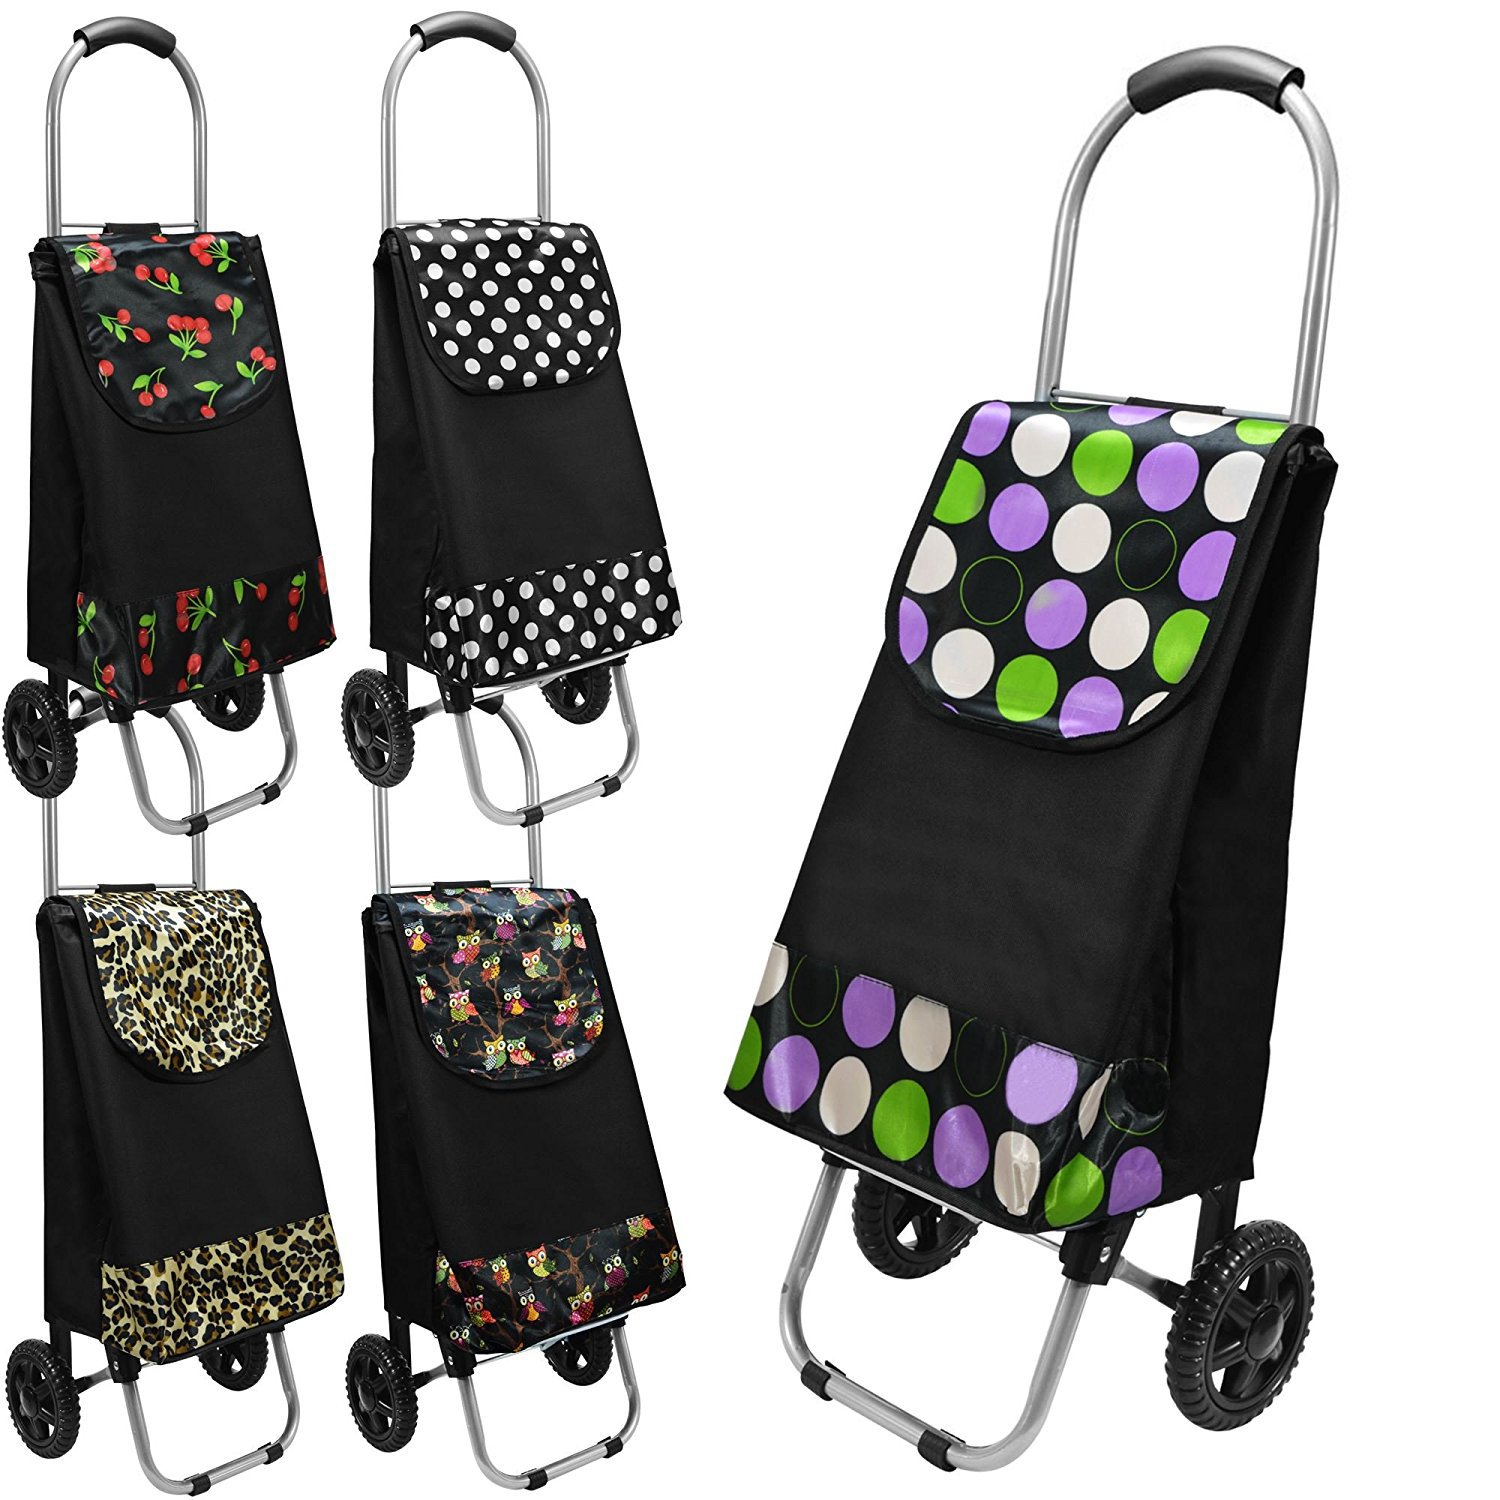 STRONG WHEELIE SHOPPING TROLLEY FESTIVAL ESSENTIAL FOLDING DURABLE WHEELED PUSH CART BAG 30 LITRE Fusion